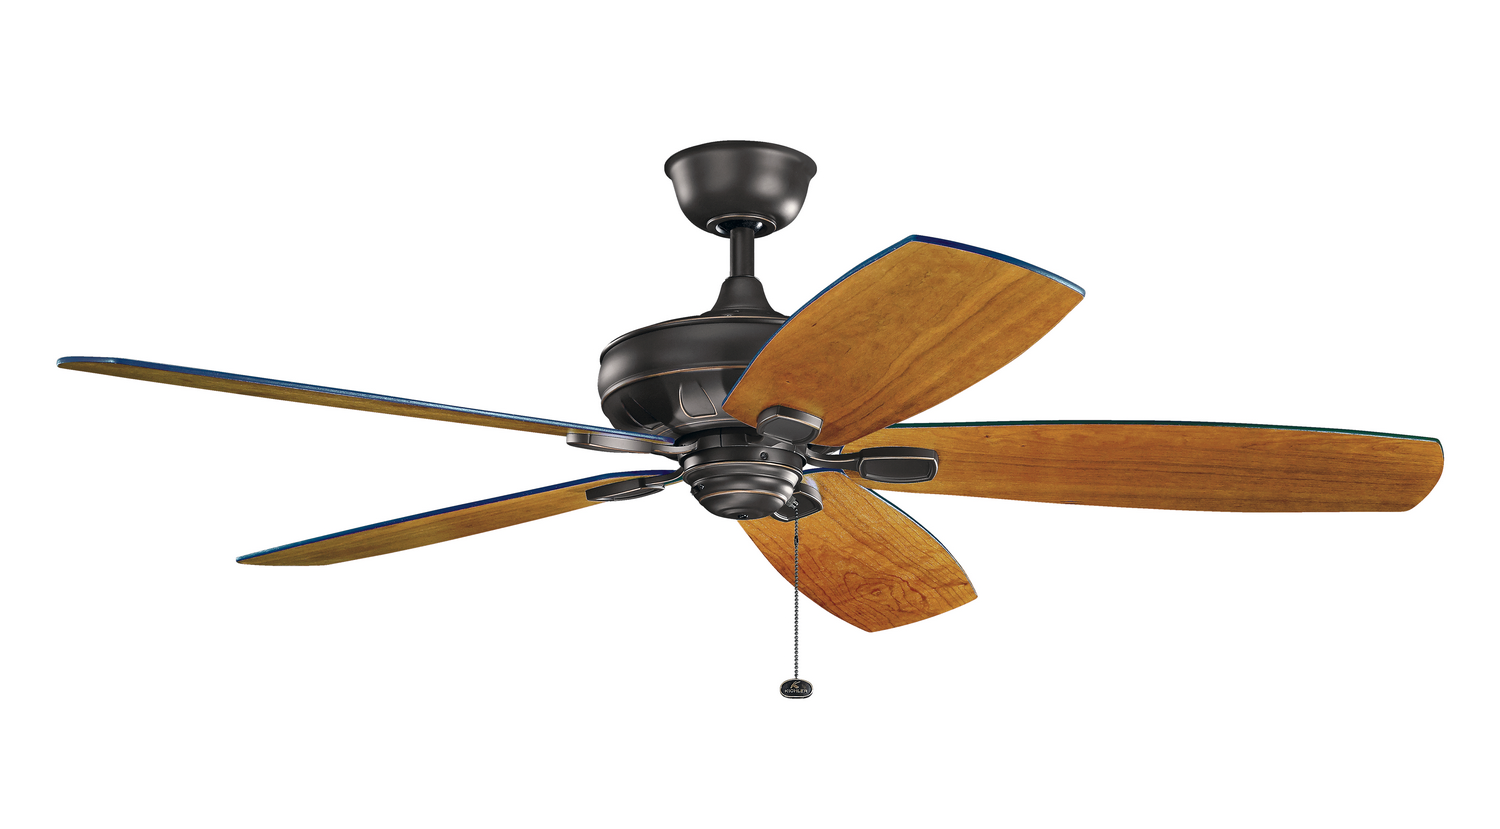 60 inchCeiling Fan from the Ashbyrn collection by Kichler 300269OZ